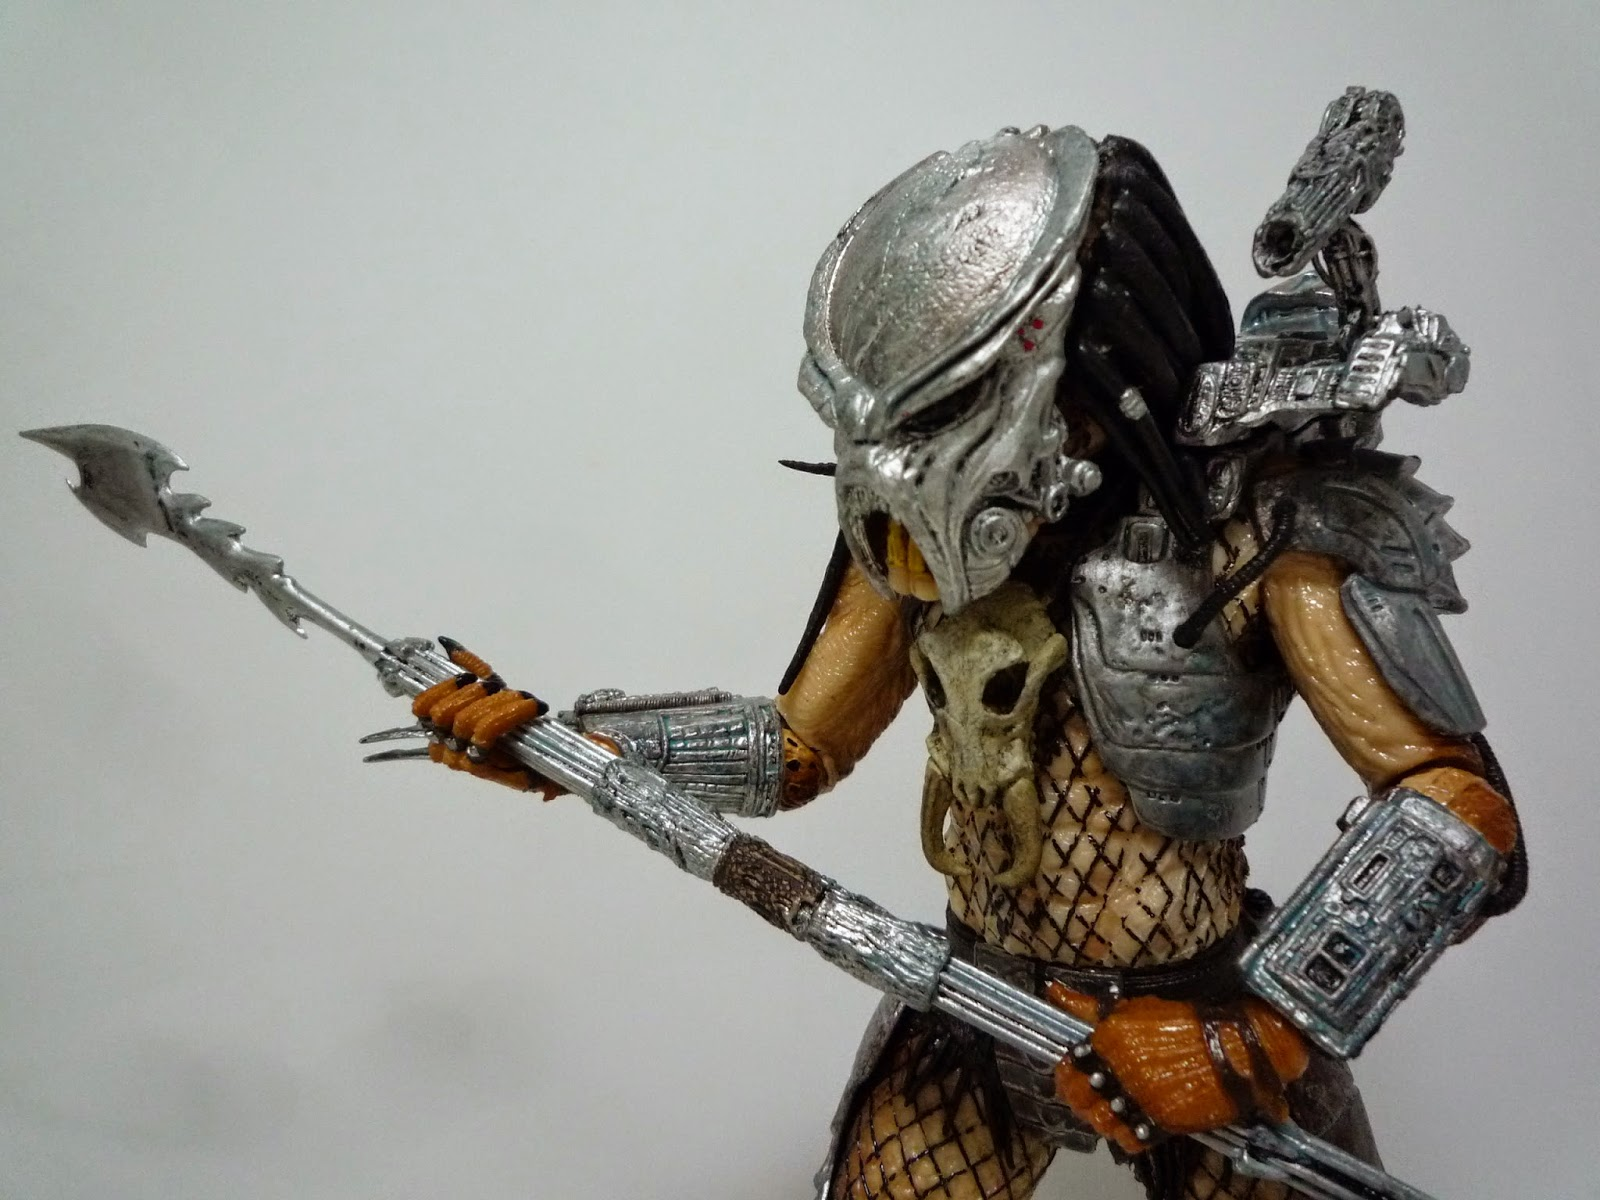 Predator Avp Model Doll Cheap Sales 50% Back To Search Resultstoys & Hobbies Romantic 18cm Neca Aliens Action Figure Ricco Frost Private Figure Toy With Weapon Helmet Alien Vs